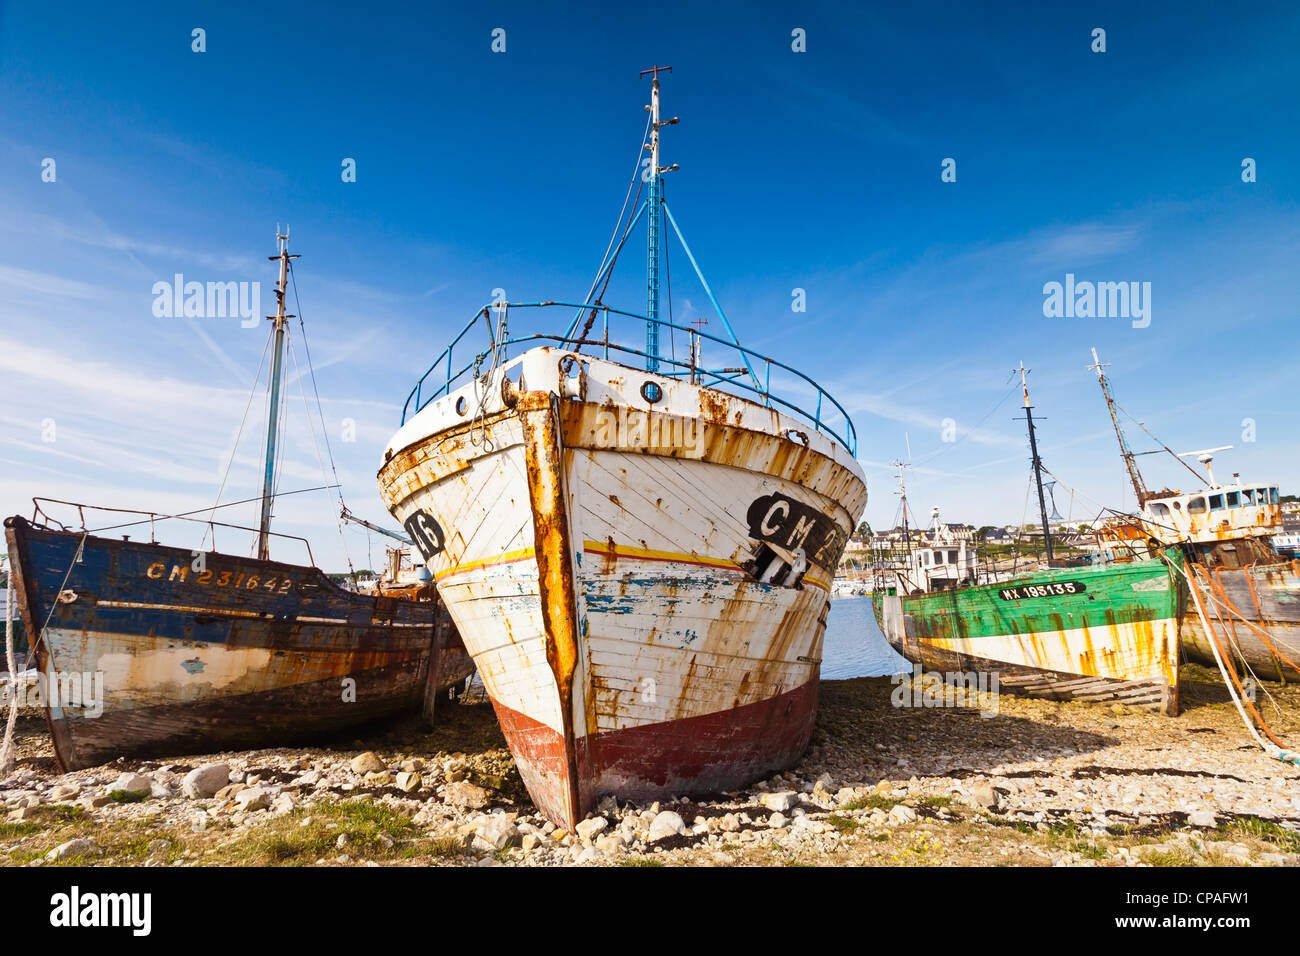 Derelict fishing boats pulled up on a beach at Camaret-Sur-Mer, a holiday resort in Finistere, Brittany, France. - Stock Image